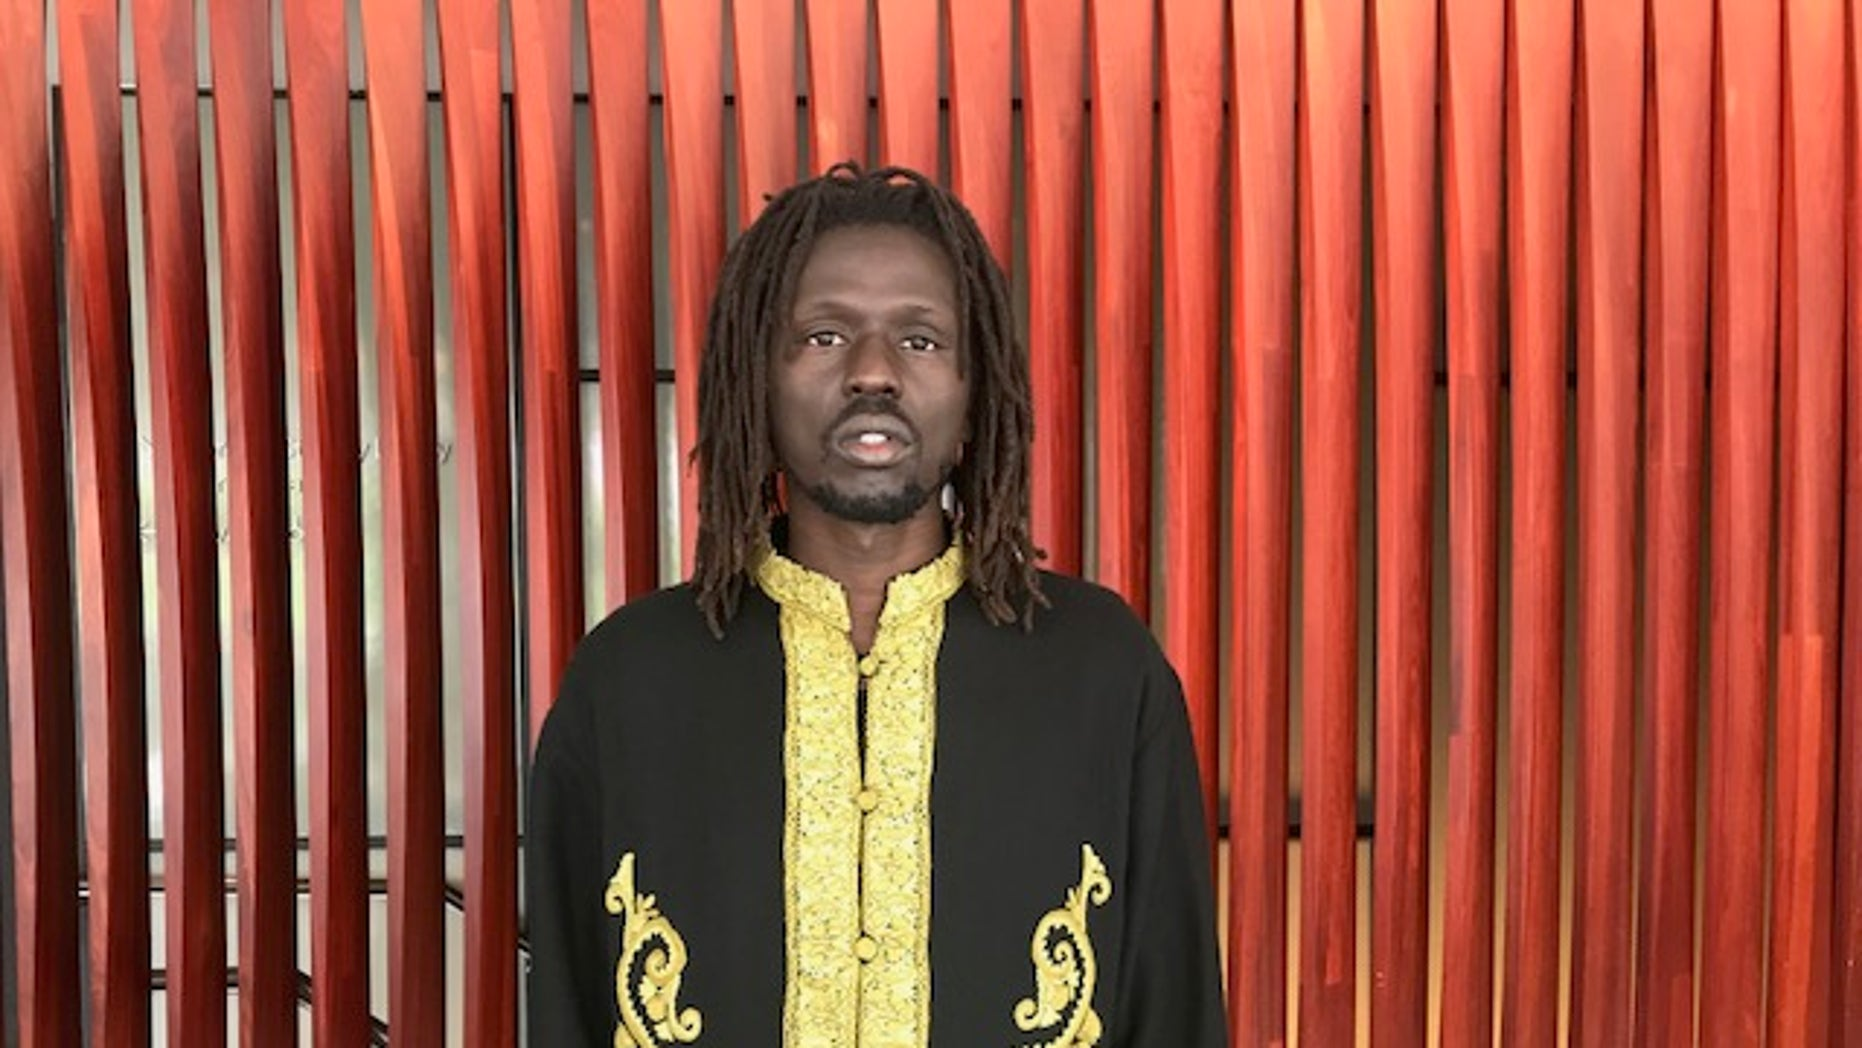 Recovered Sudanese child soldier turned activist and hip-hop artist, Emmanuel Jal